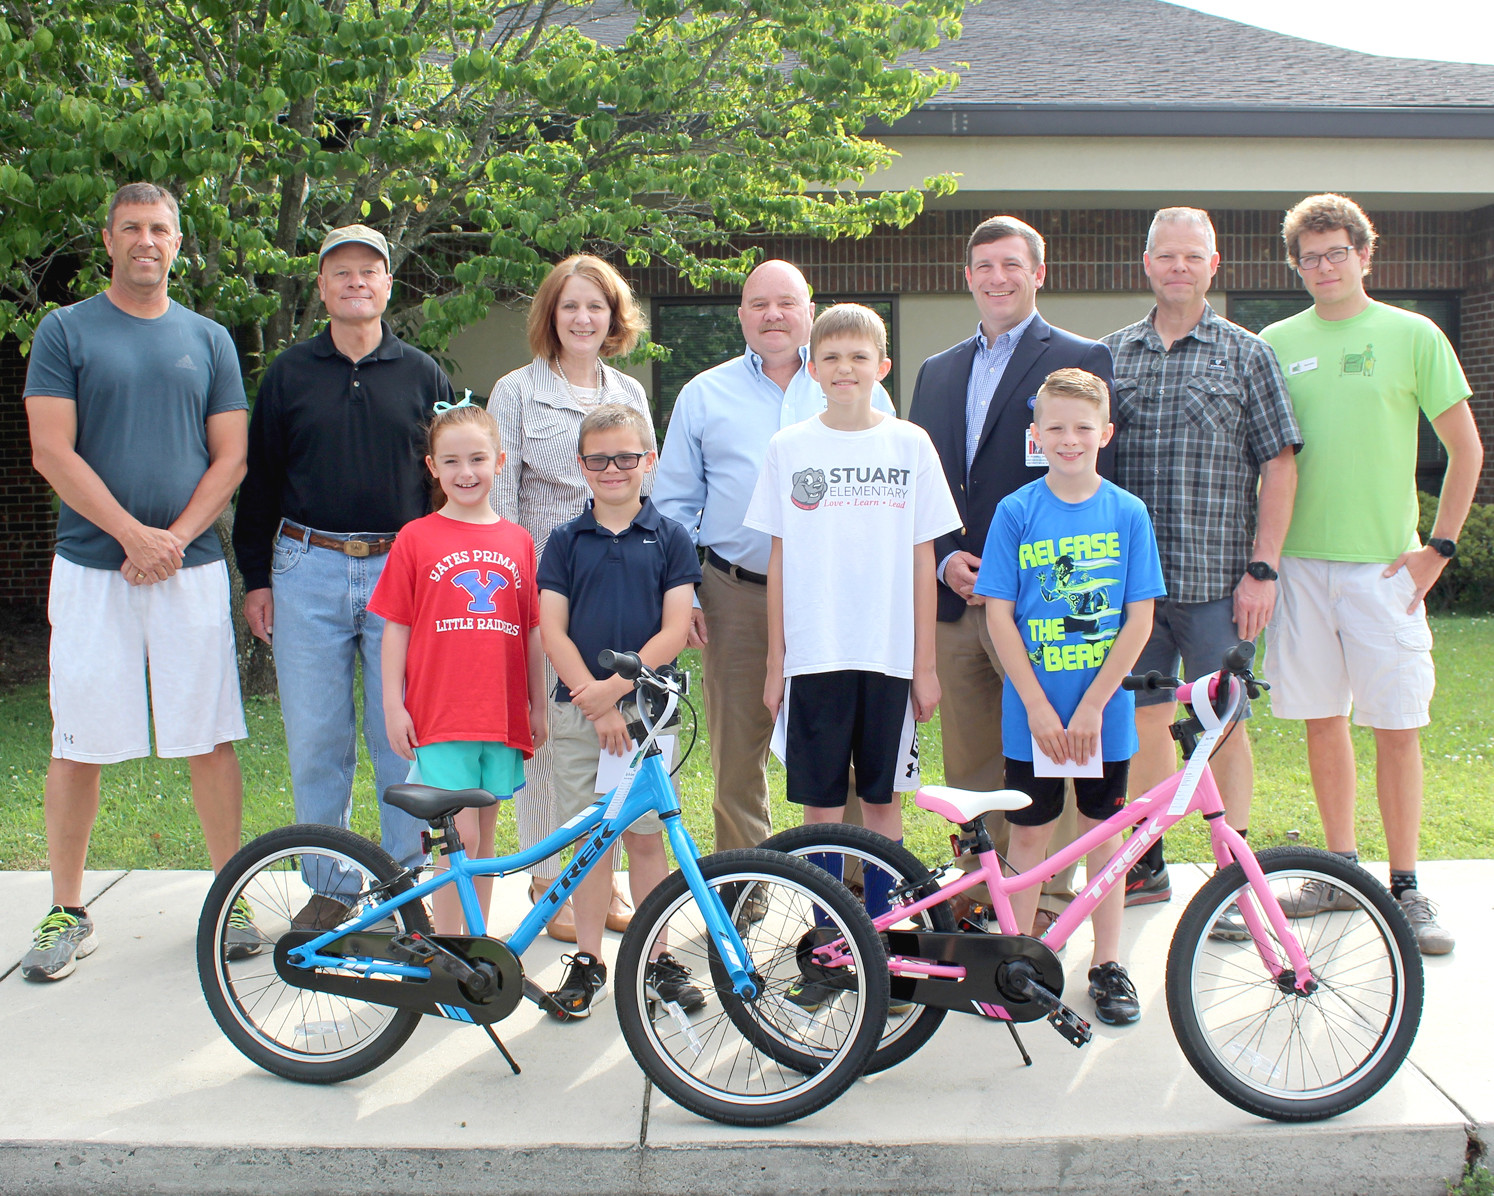 FOUR STUDENTS recently received vouchers for new bicycles as a reward for perfect school attendance. In the front, from left, are Alyson Reiter of Yates Primary School, Neyland Croft of Valley View Elementary School, Elijah Eledge of George R. Stuart Elementary School and Joseph Douglas of Taylor Elementary School. Joining them are Franklin Elrod, teacher at Taylor Elementary; Bruce Bancroft, master of the Cleveland Masonic Lodge; Bradley County Schools Director Dr. Linda Cash, Barry Phillips, past master of the Cleveland Masonic Lodge; Cleveland City Schools Director Dr. Russell Dyer; and Doug Coulter and Brandan Coulter, both of Scott's Bicycle Centre.